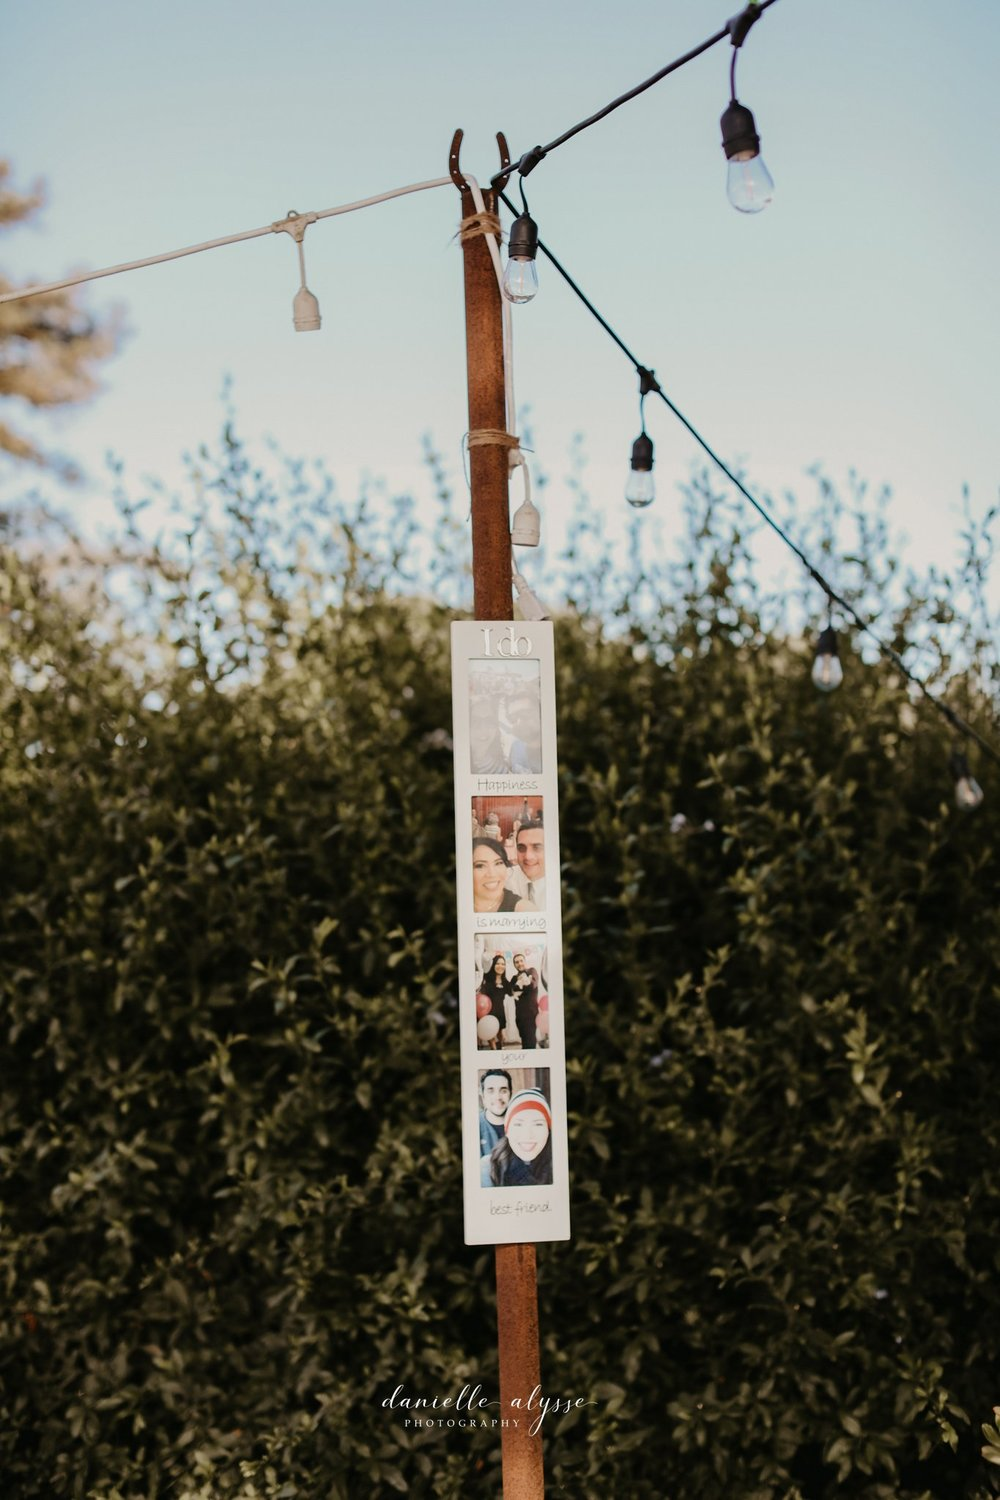 180630_wedding_lily_ryan_mission_soledad_california_danielle_alysse_photography_blog_849_WEB.jpg